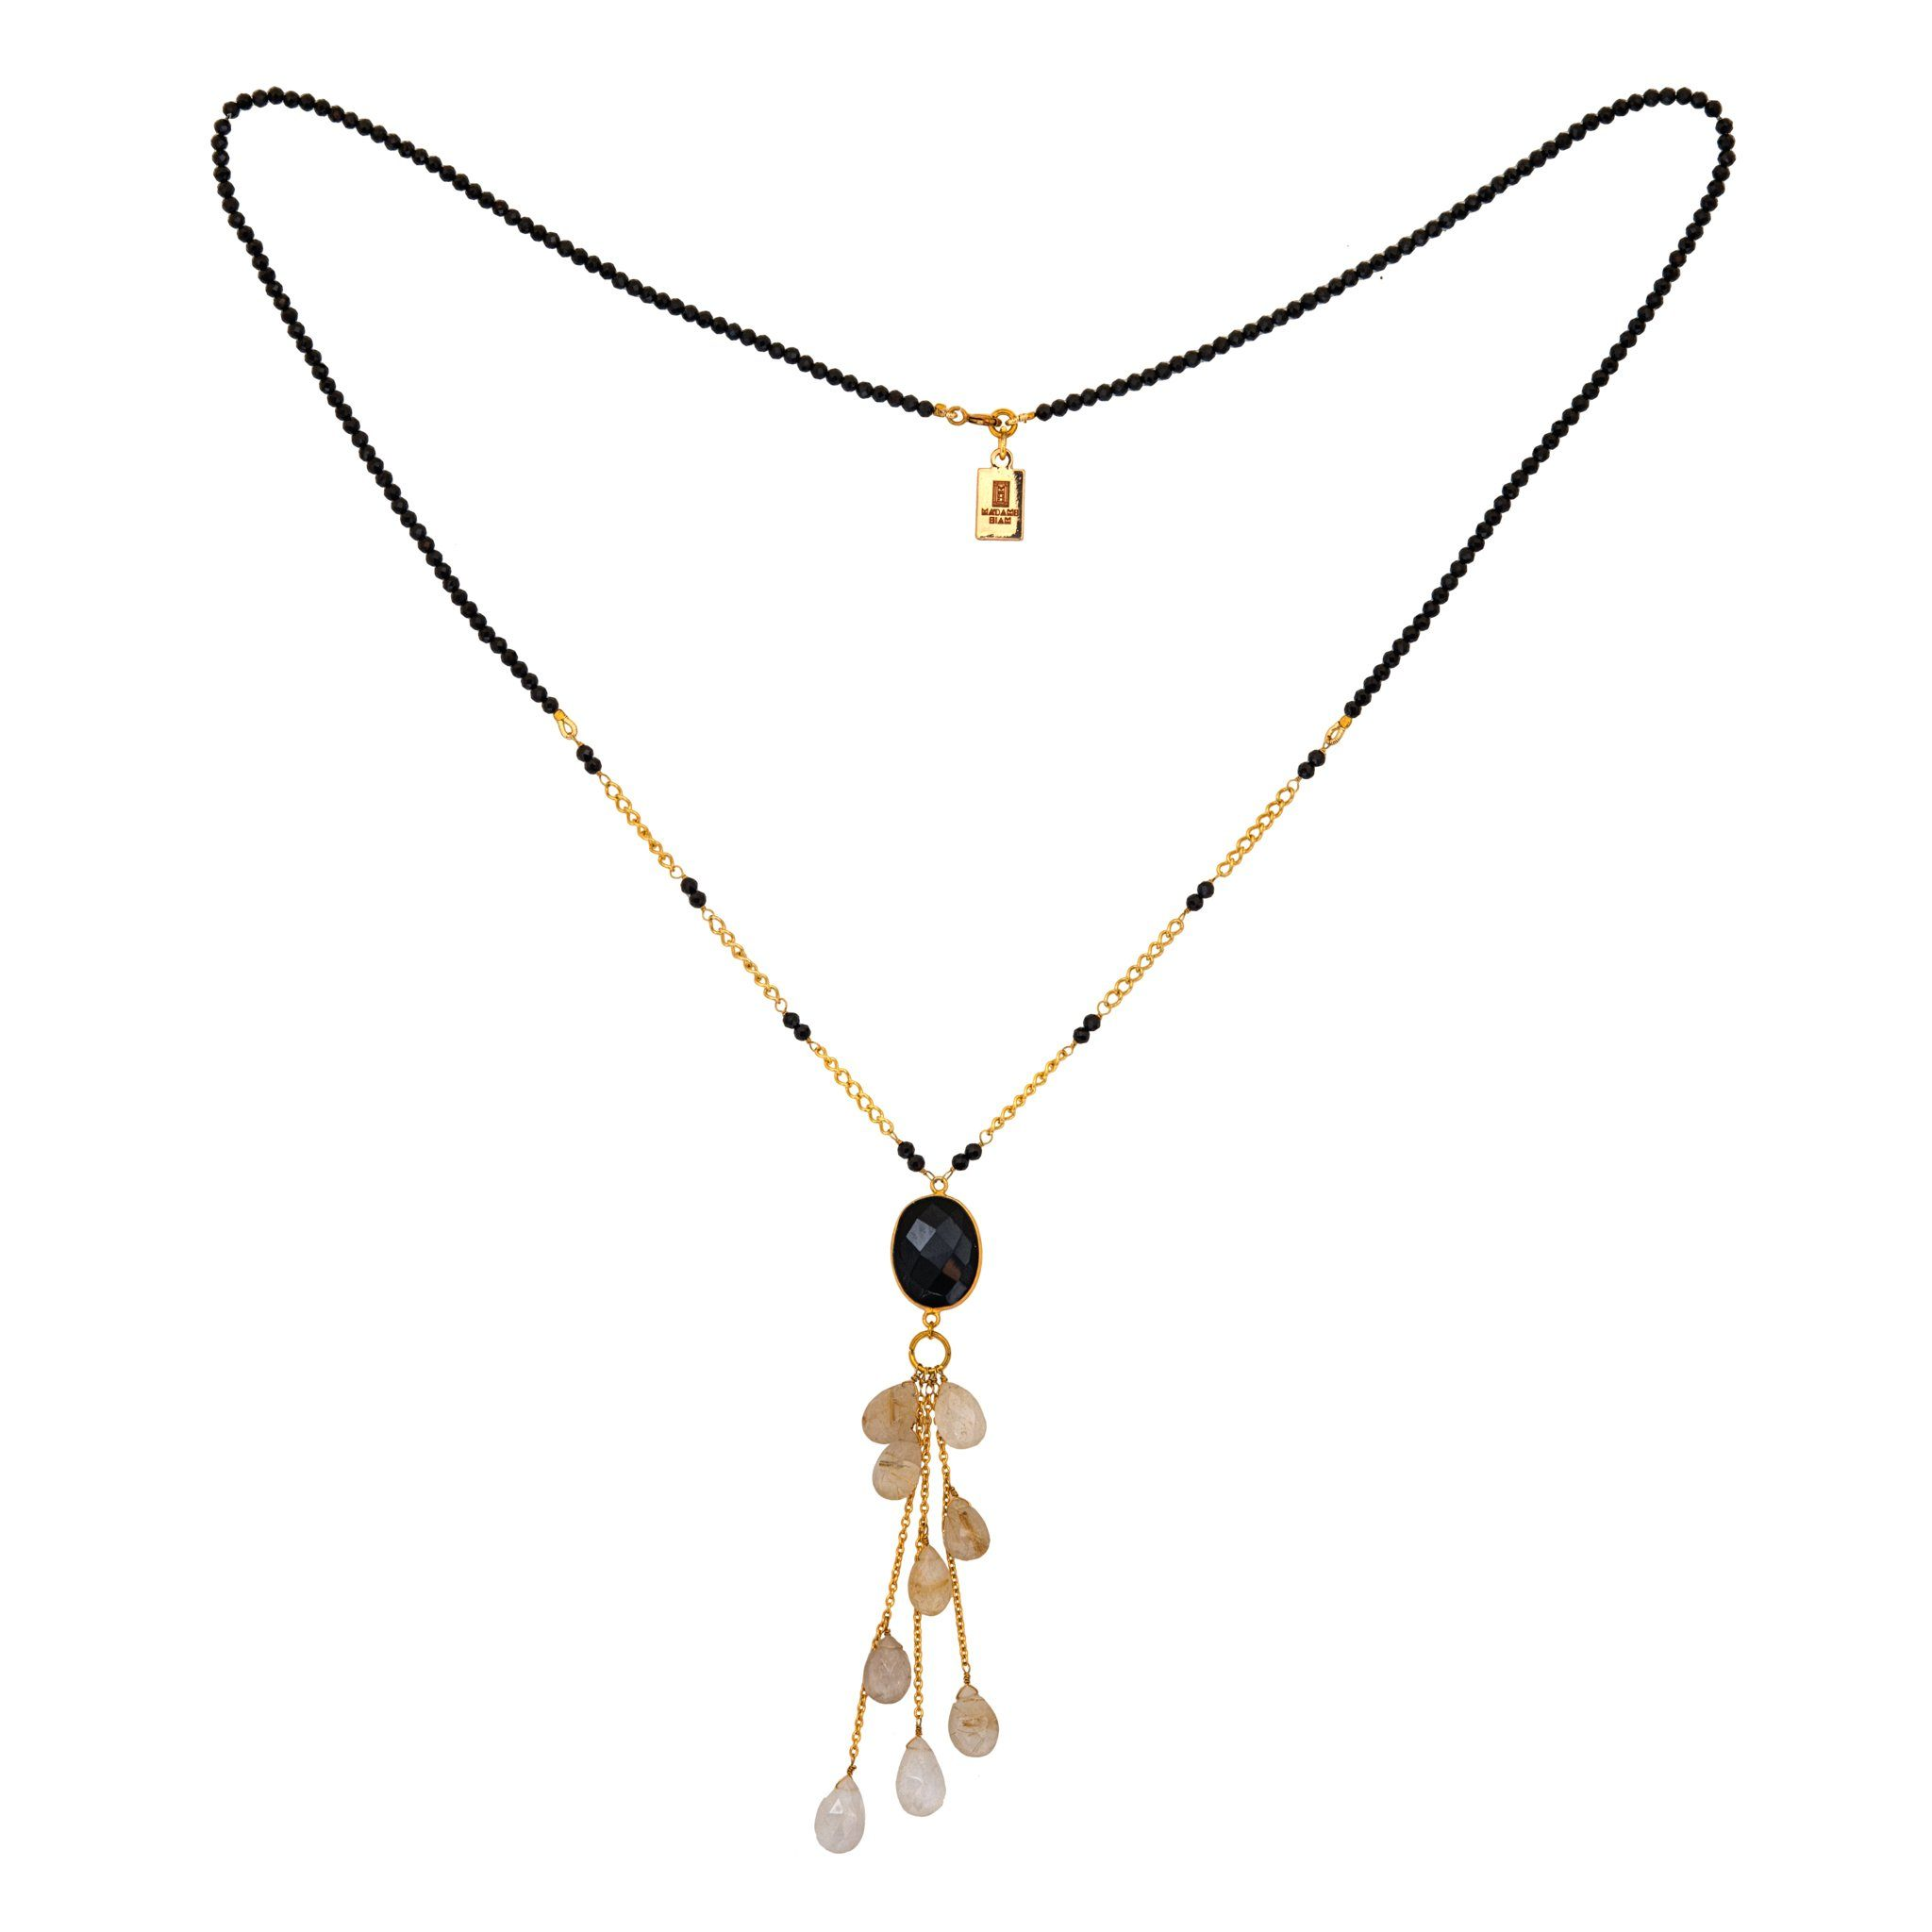 LUZ black onyx long necklace with rutile drops - MadamSiam